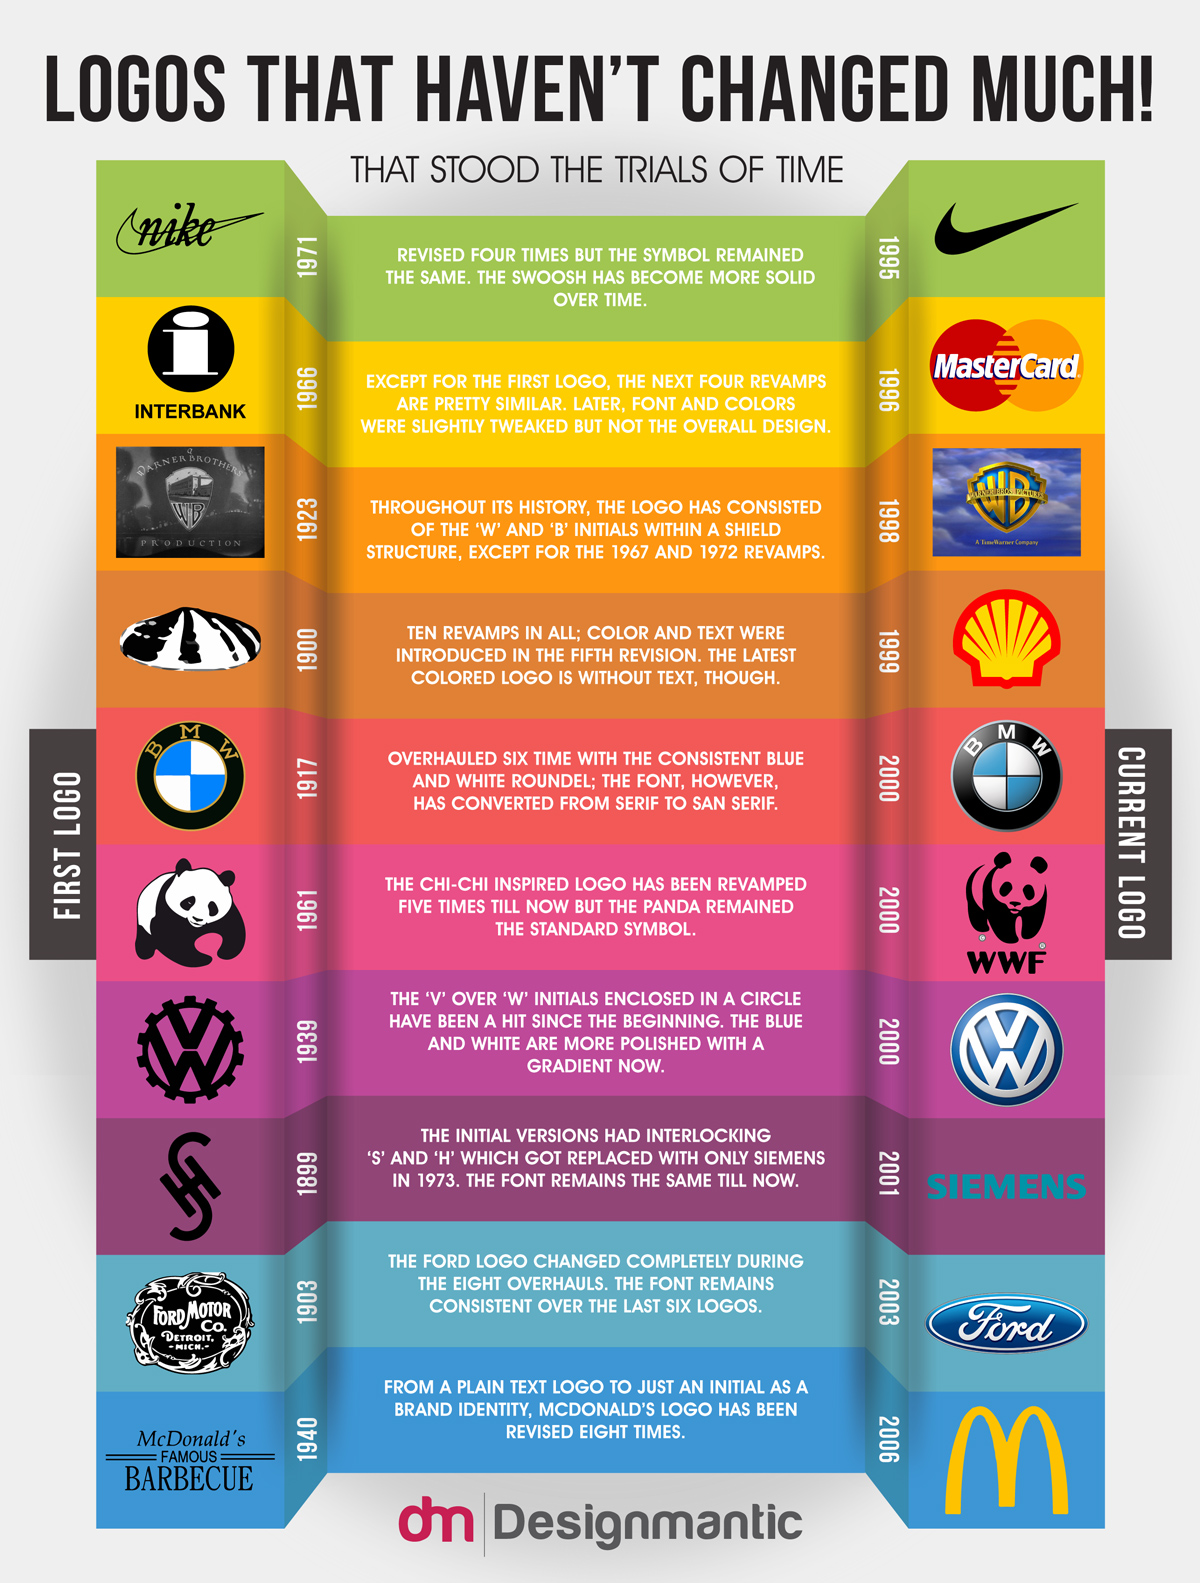 10 Logos That Havent Changed Much